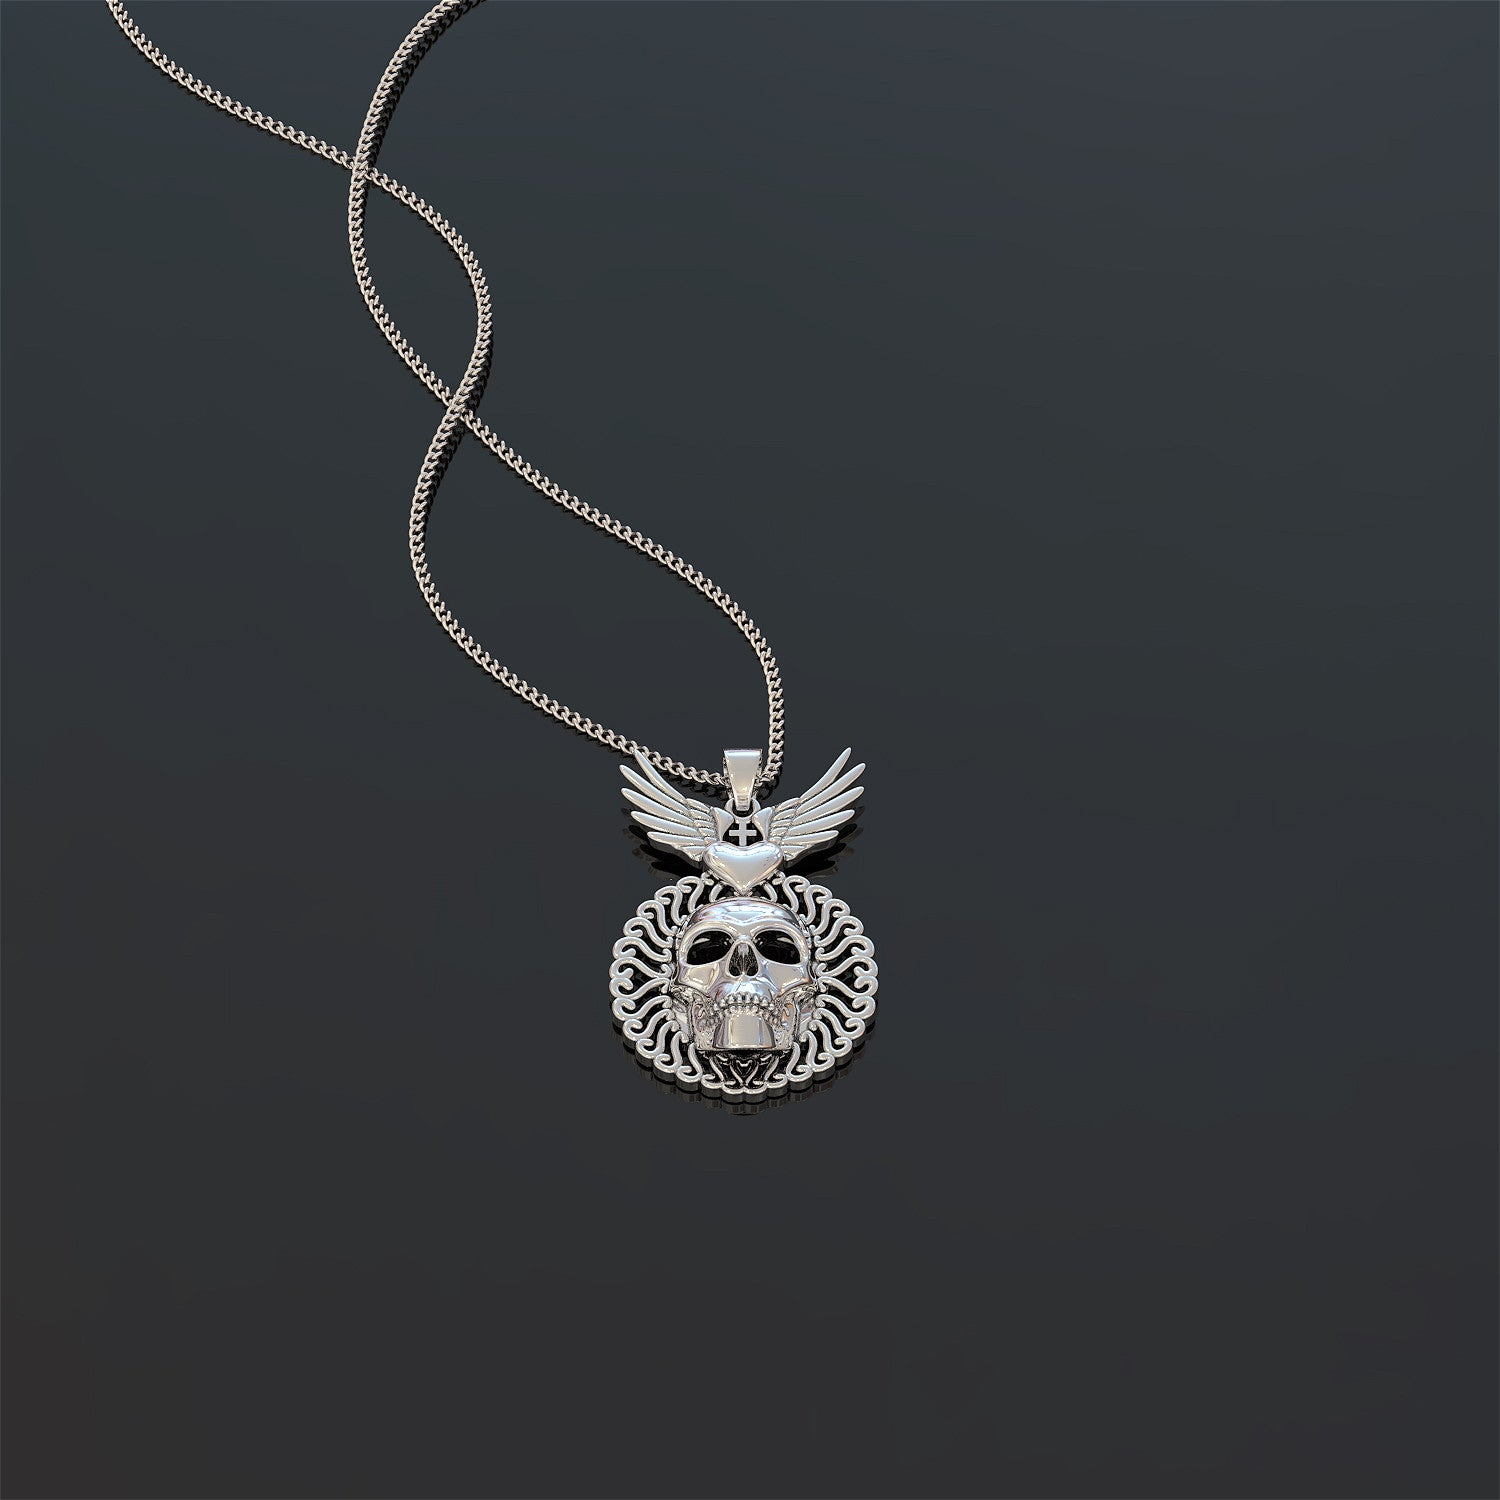 Eagle Skull Necklace